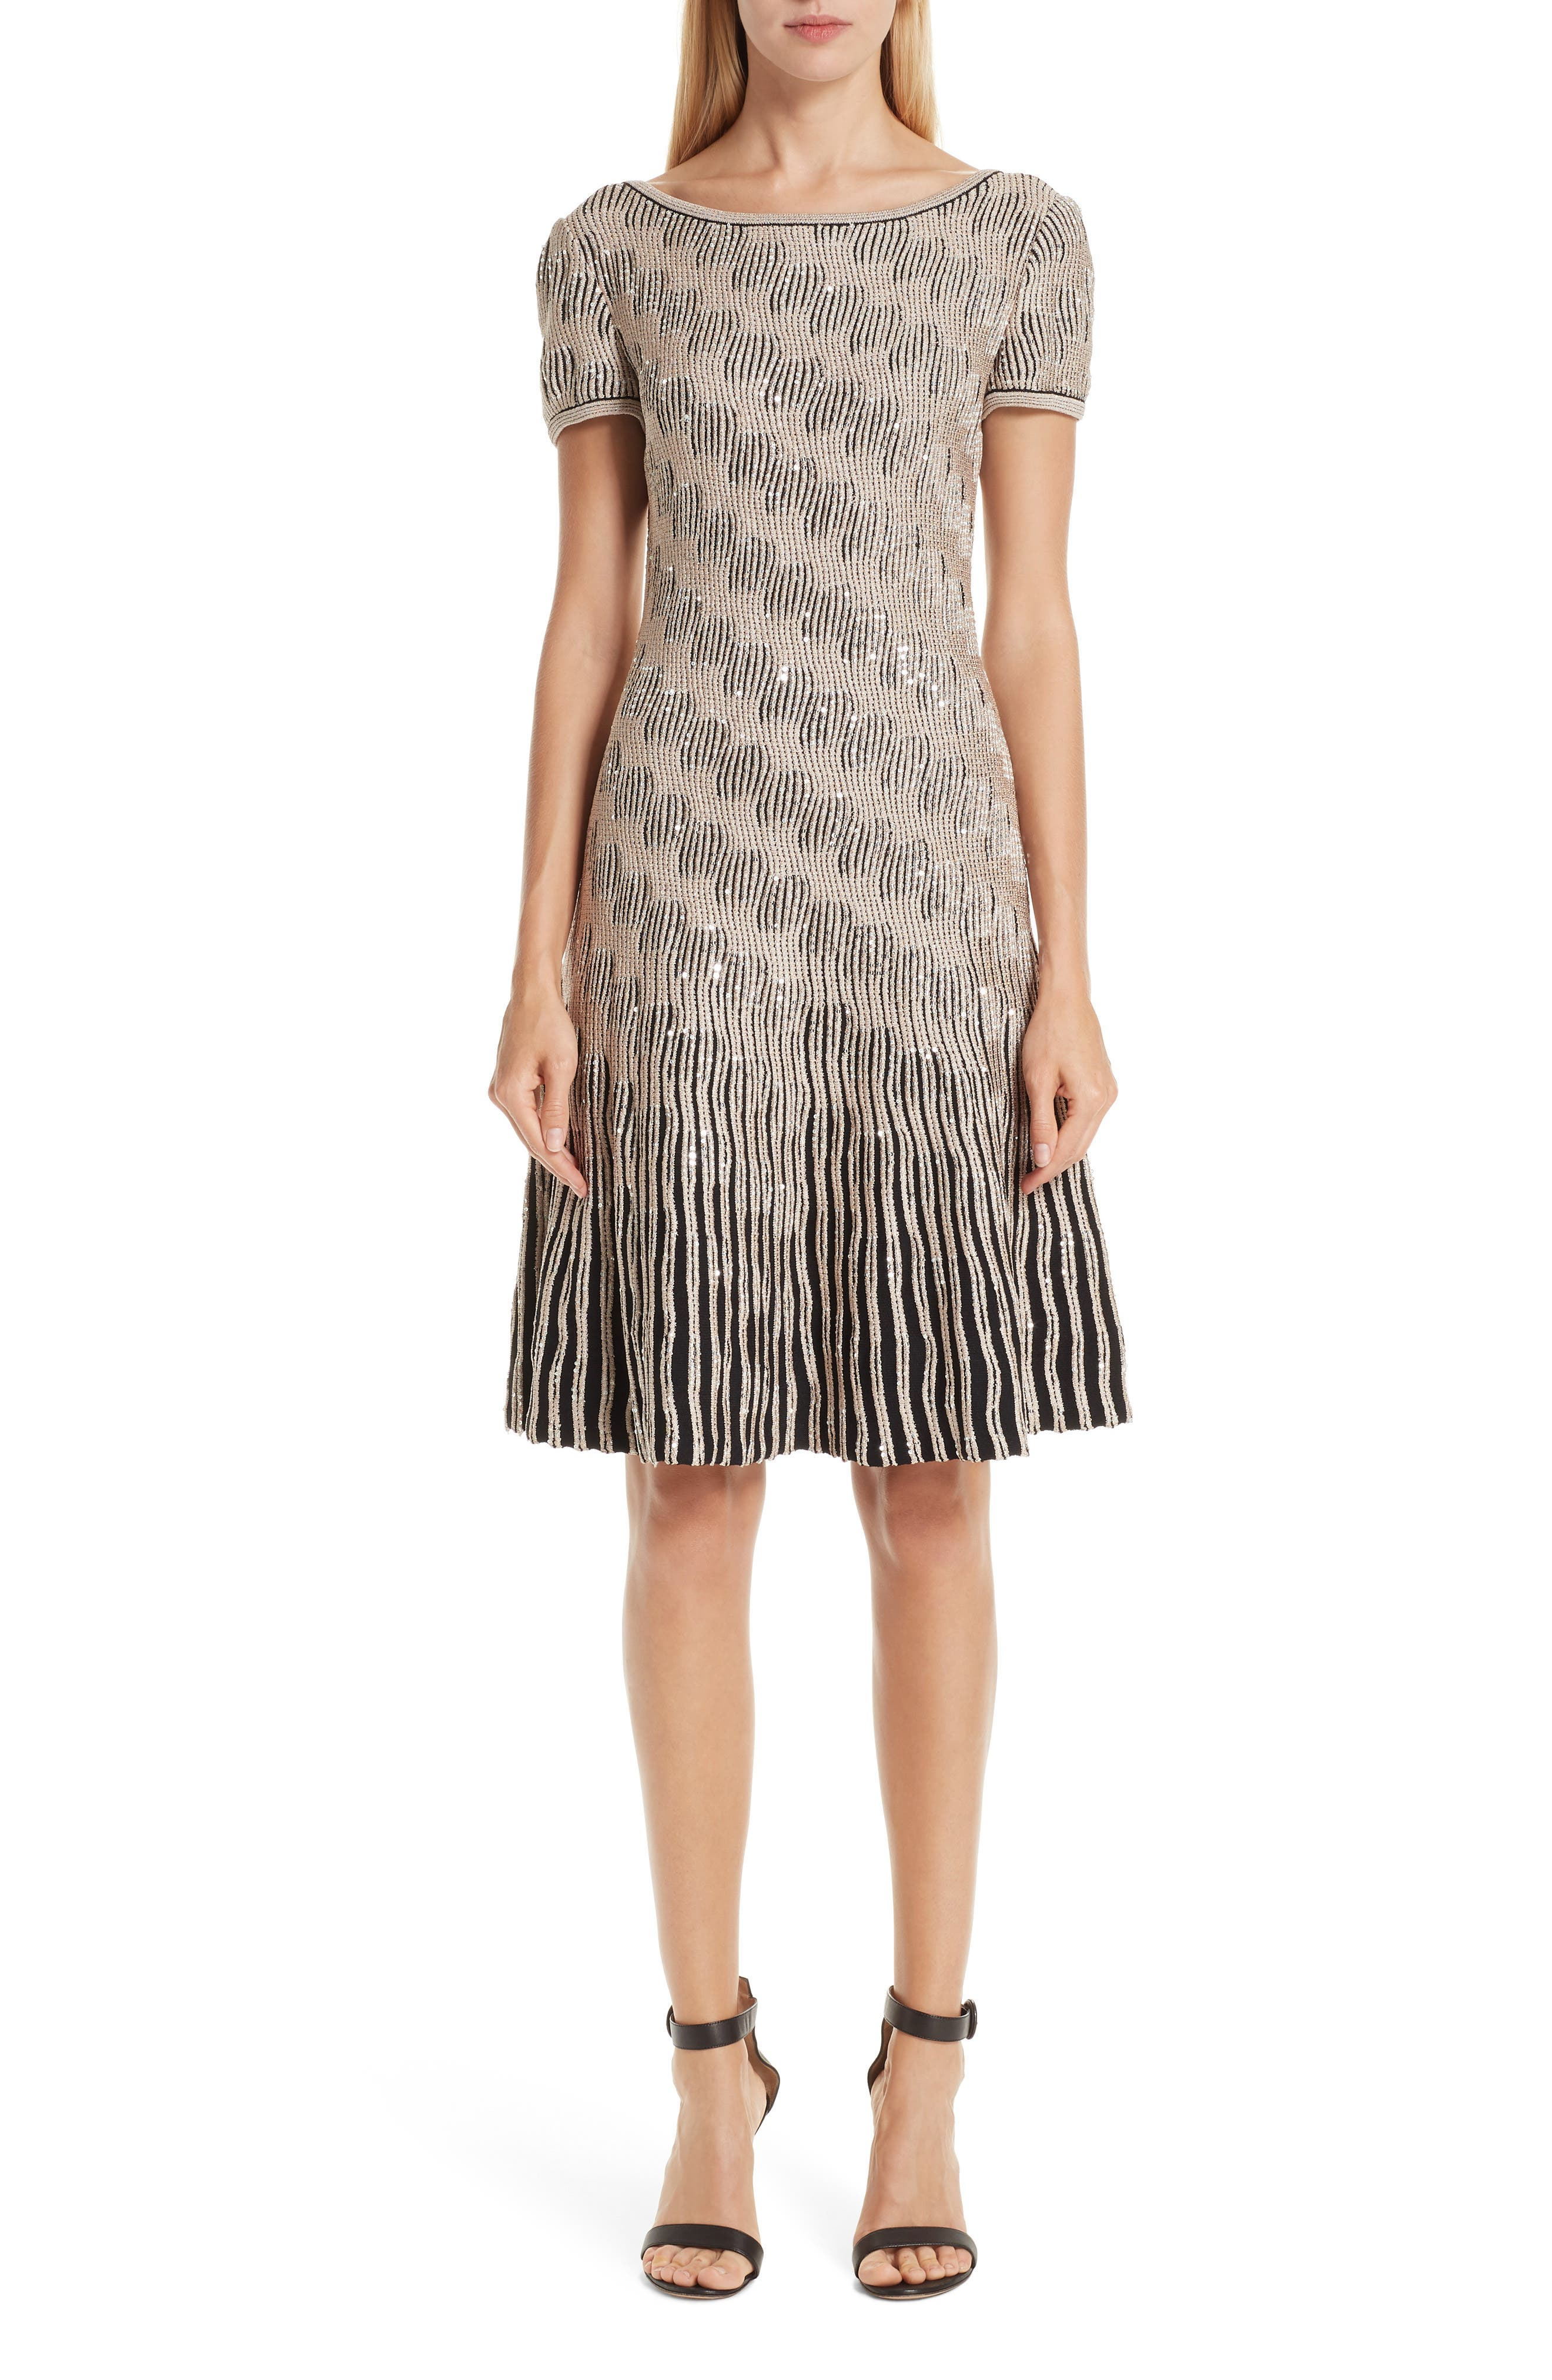 ST. JOHN COLLECTION Inlaid Sequin Trellis Fit & Flare Dress, Main, color, CAVIAR